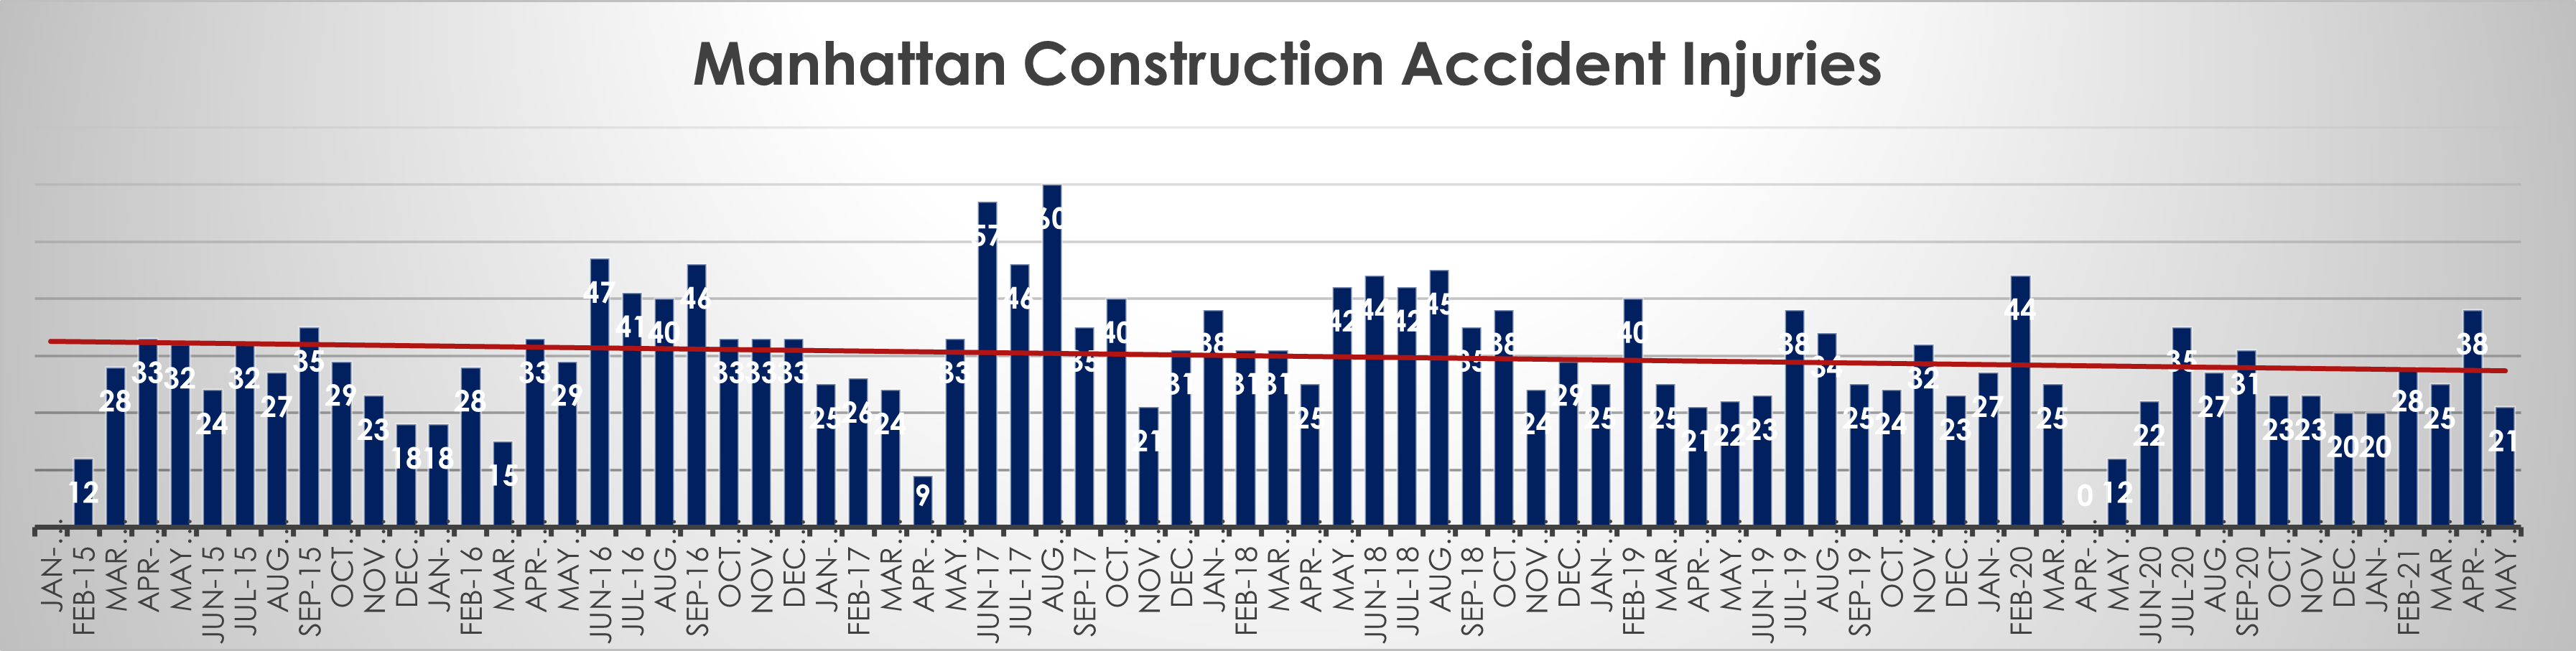 Manhattan construction accident injuries May 21